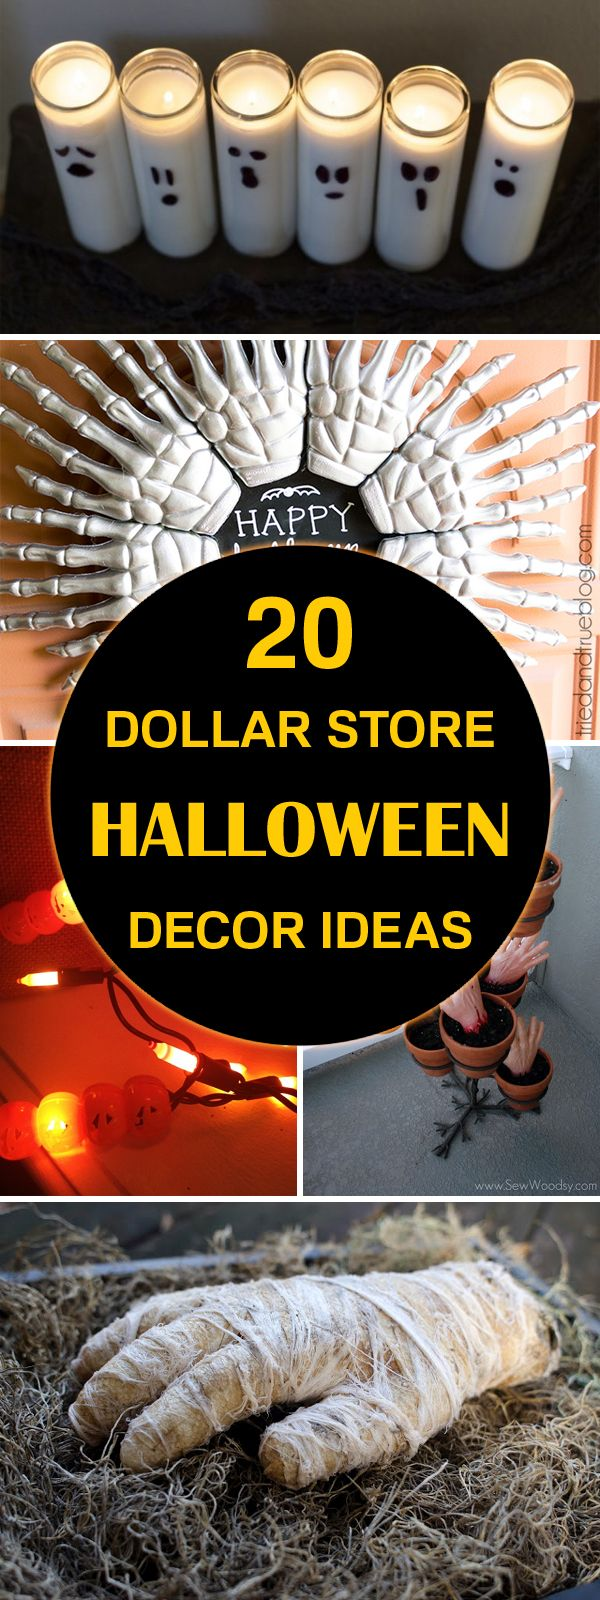 20 dollar store halloween decor ideas - Simple Homemade Halloween Decorations